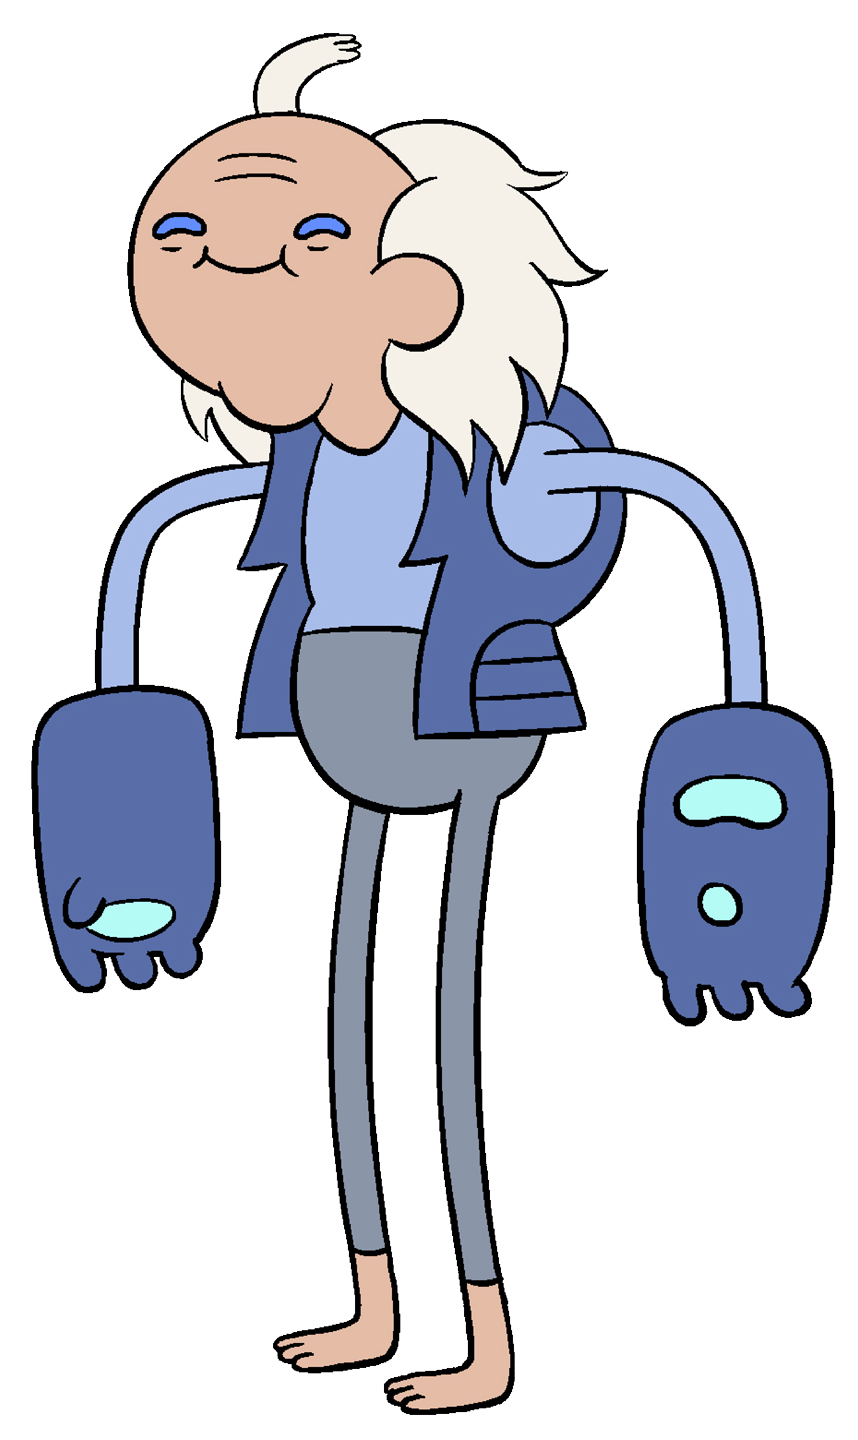 Emotions clipart 7 human. Emotion lord bravest warriors